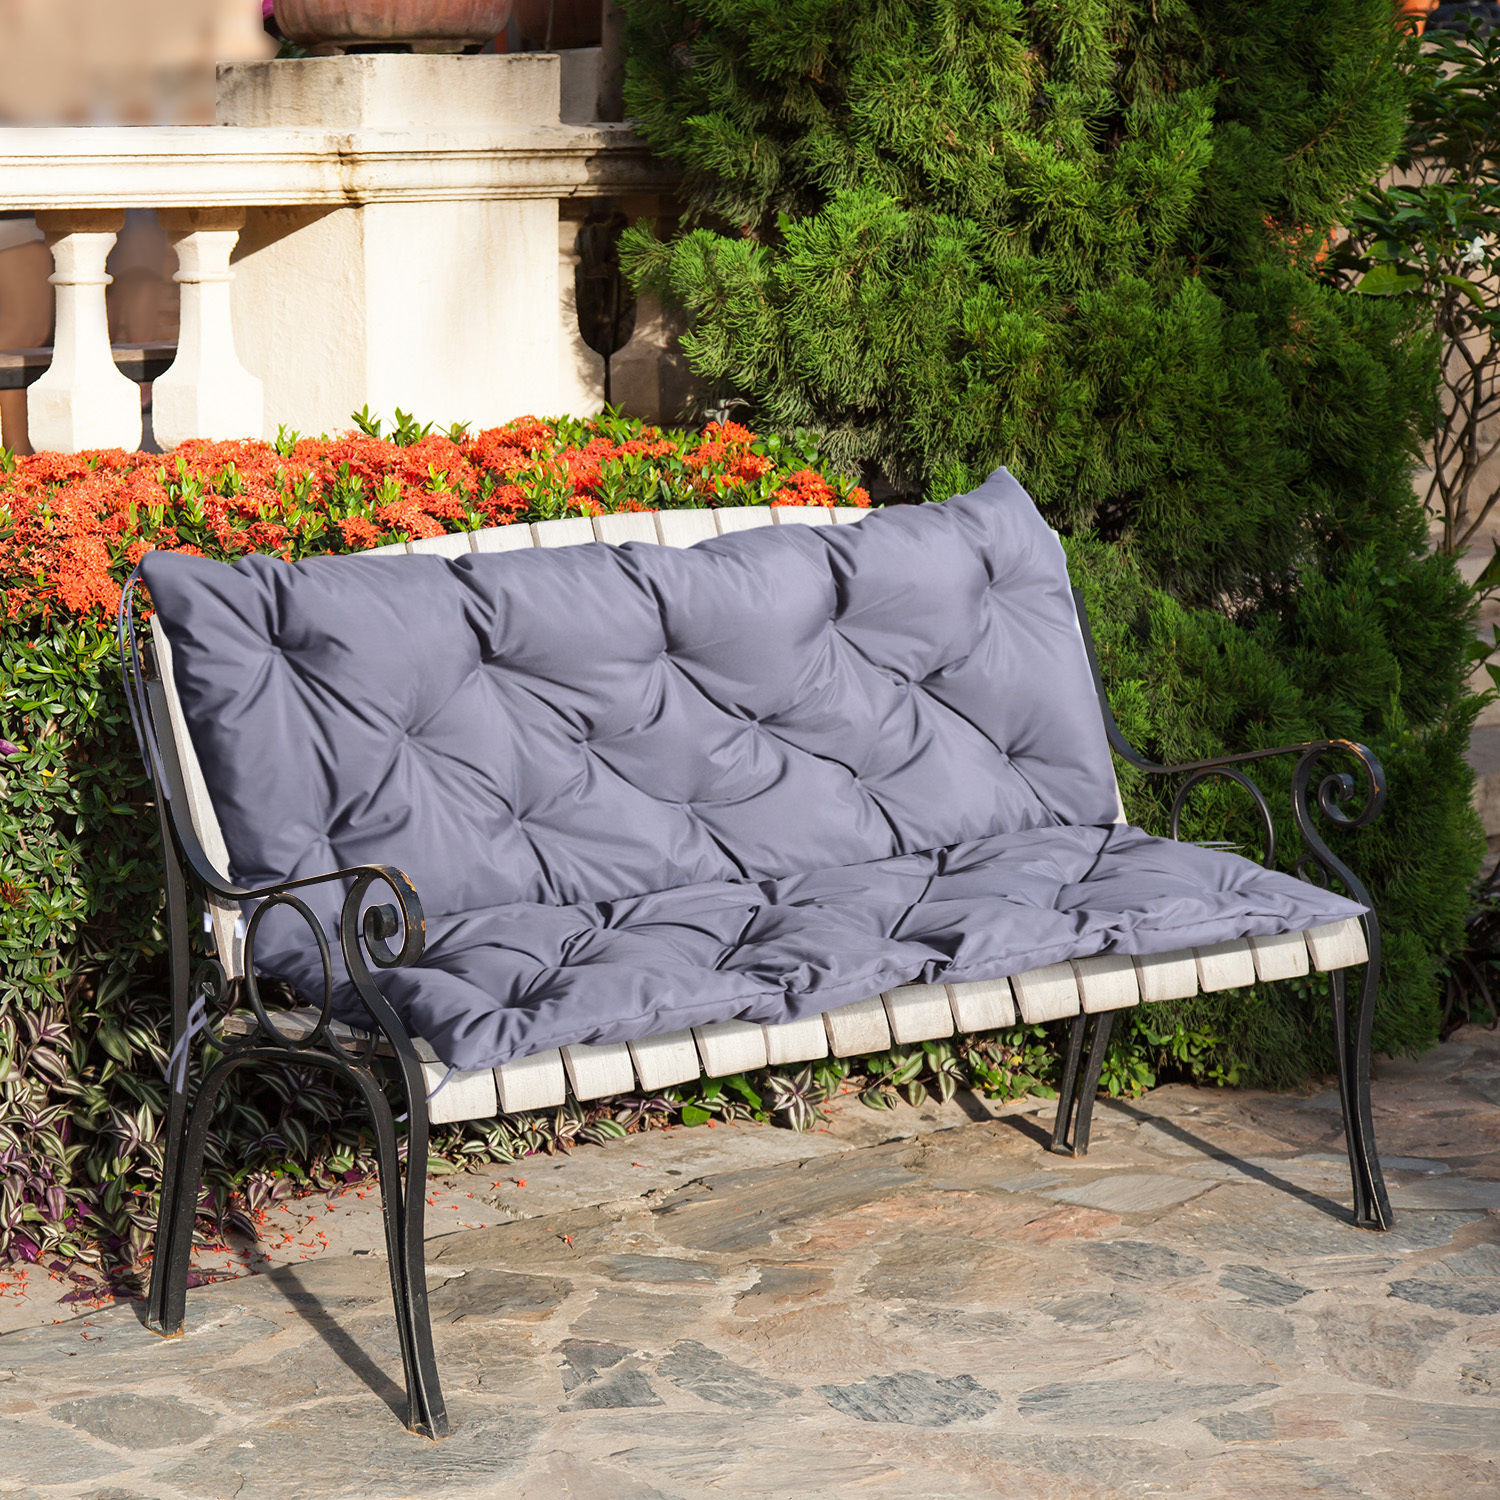 Outsunny 2 Seater Garden Bench Swing Chair Replacement